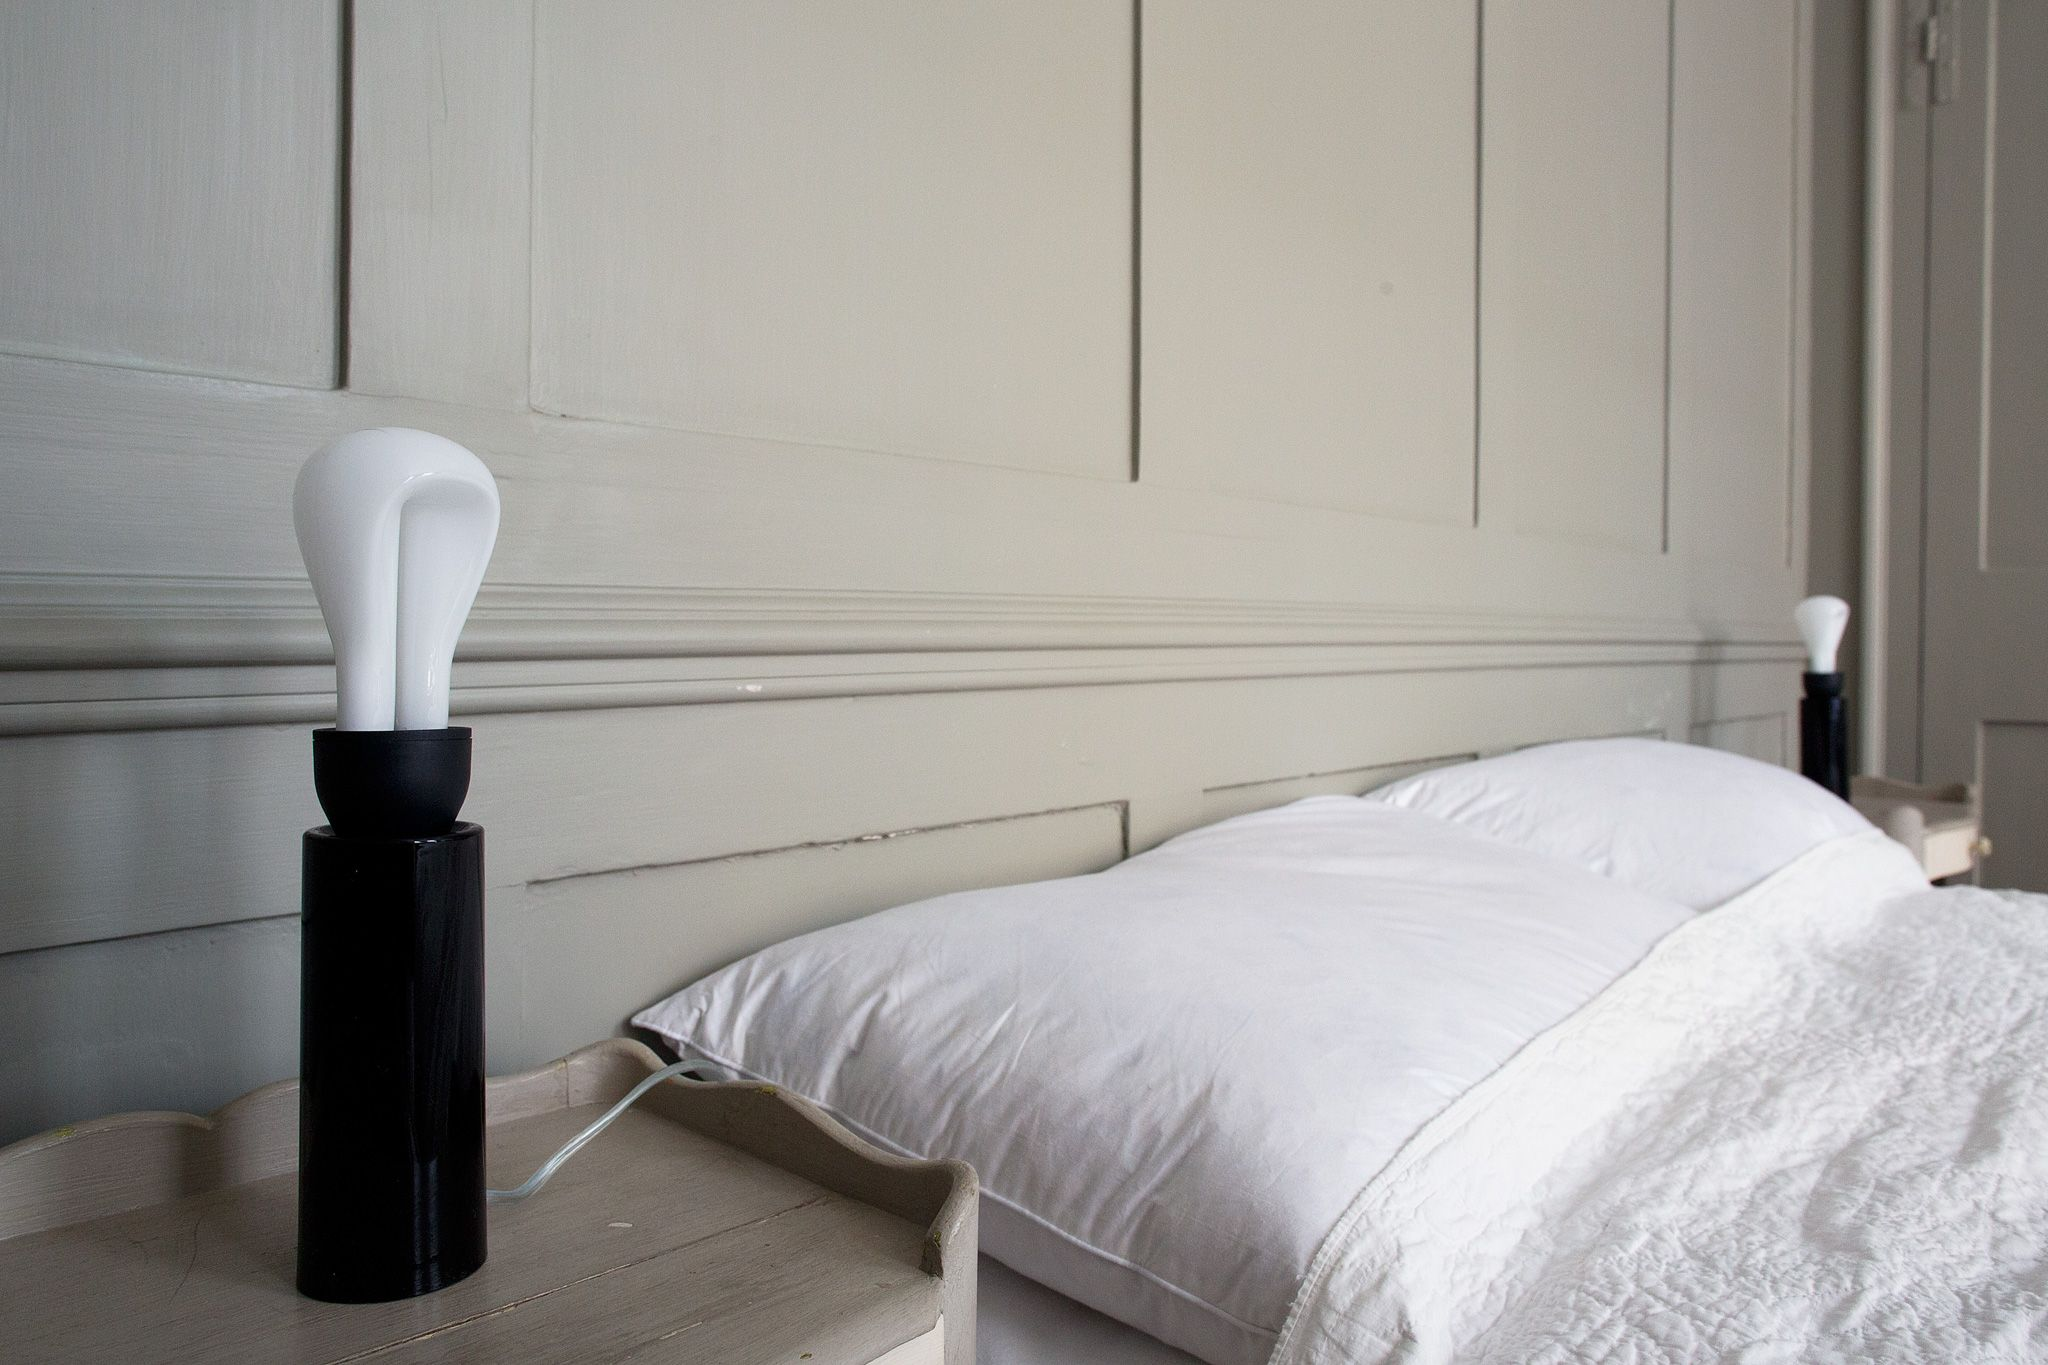 intimate bedroom lighting. Plumen 002\u0027s Low Brightness Is Perfect To Create An Intimate And Cozy Atmosphere In A Bedroom Lighting